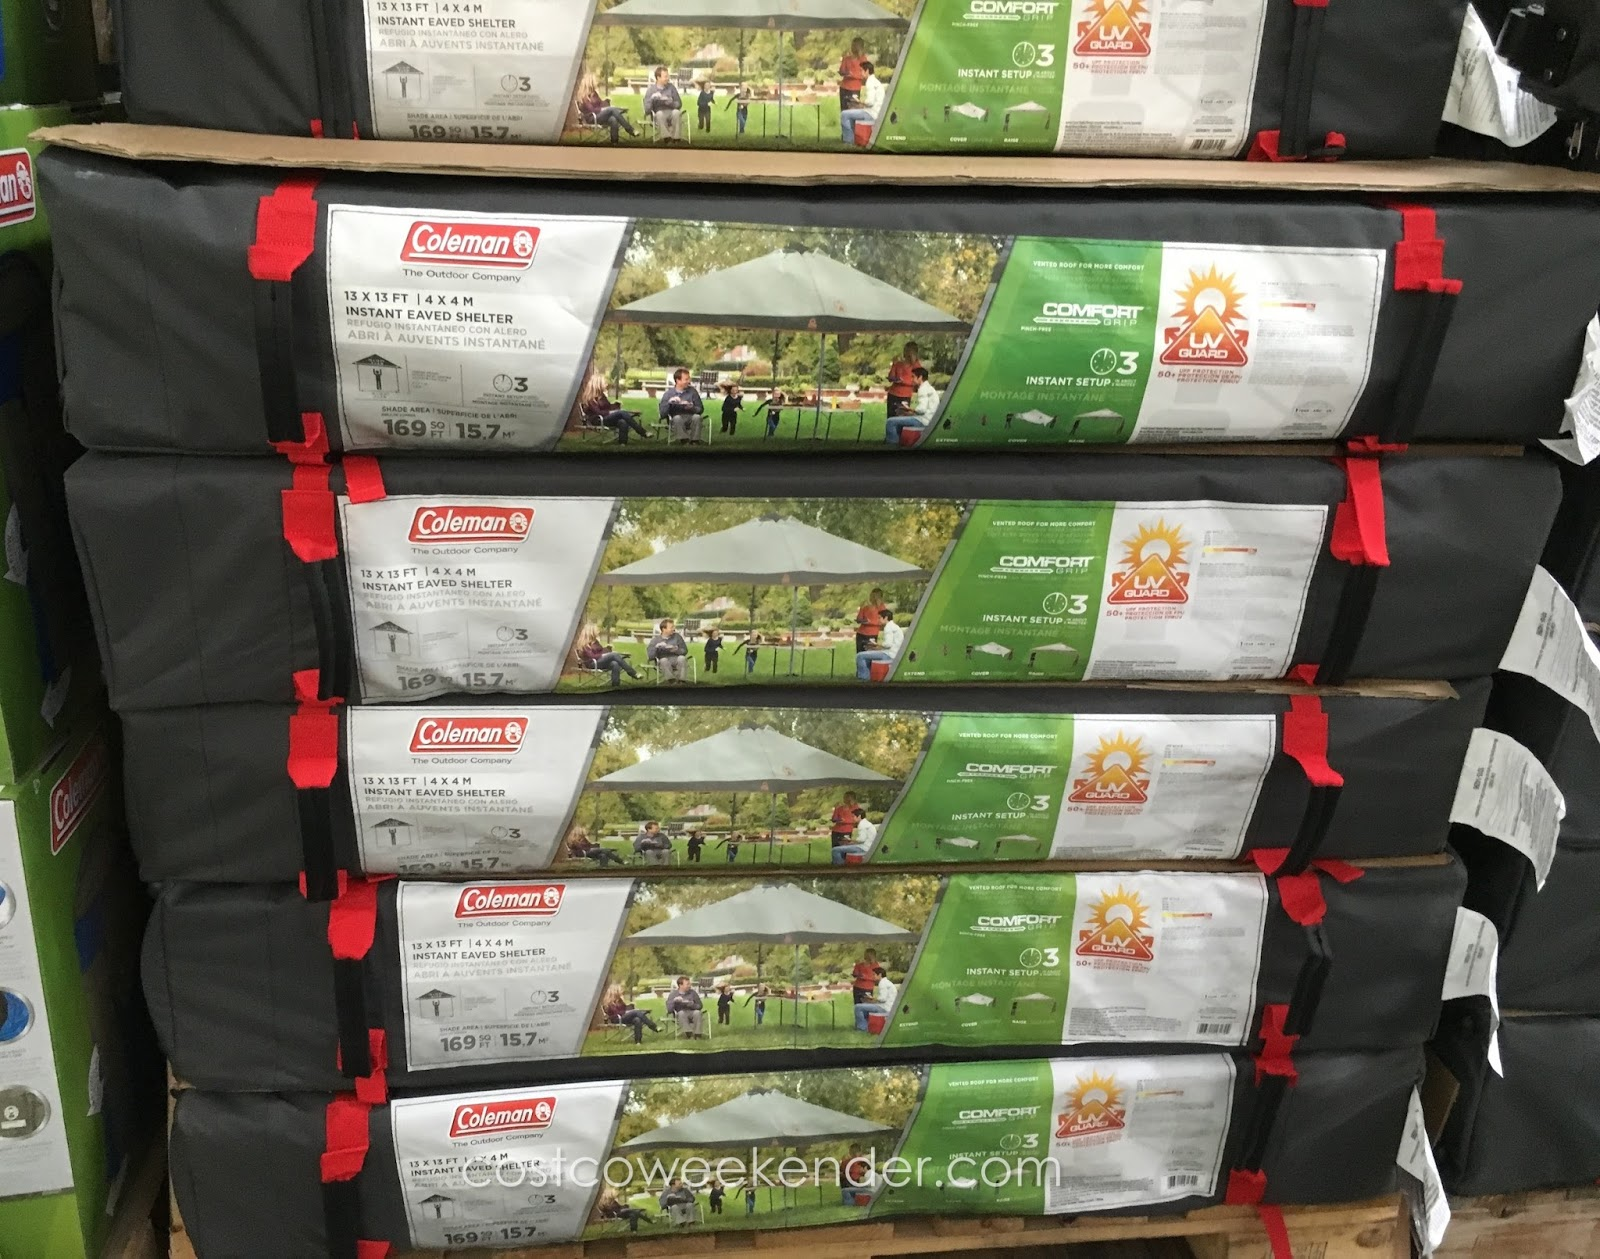 Protect yourself from the sun with the Coleman Instant Eaved Shelter & Coleman Instant Eaved Shelter | Costco Weekender